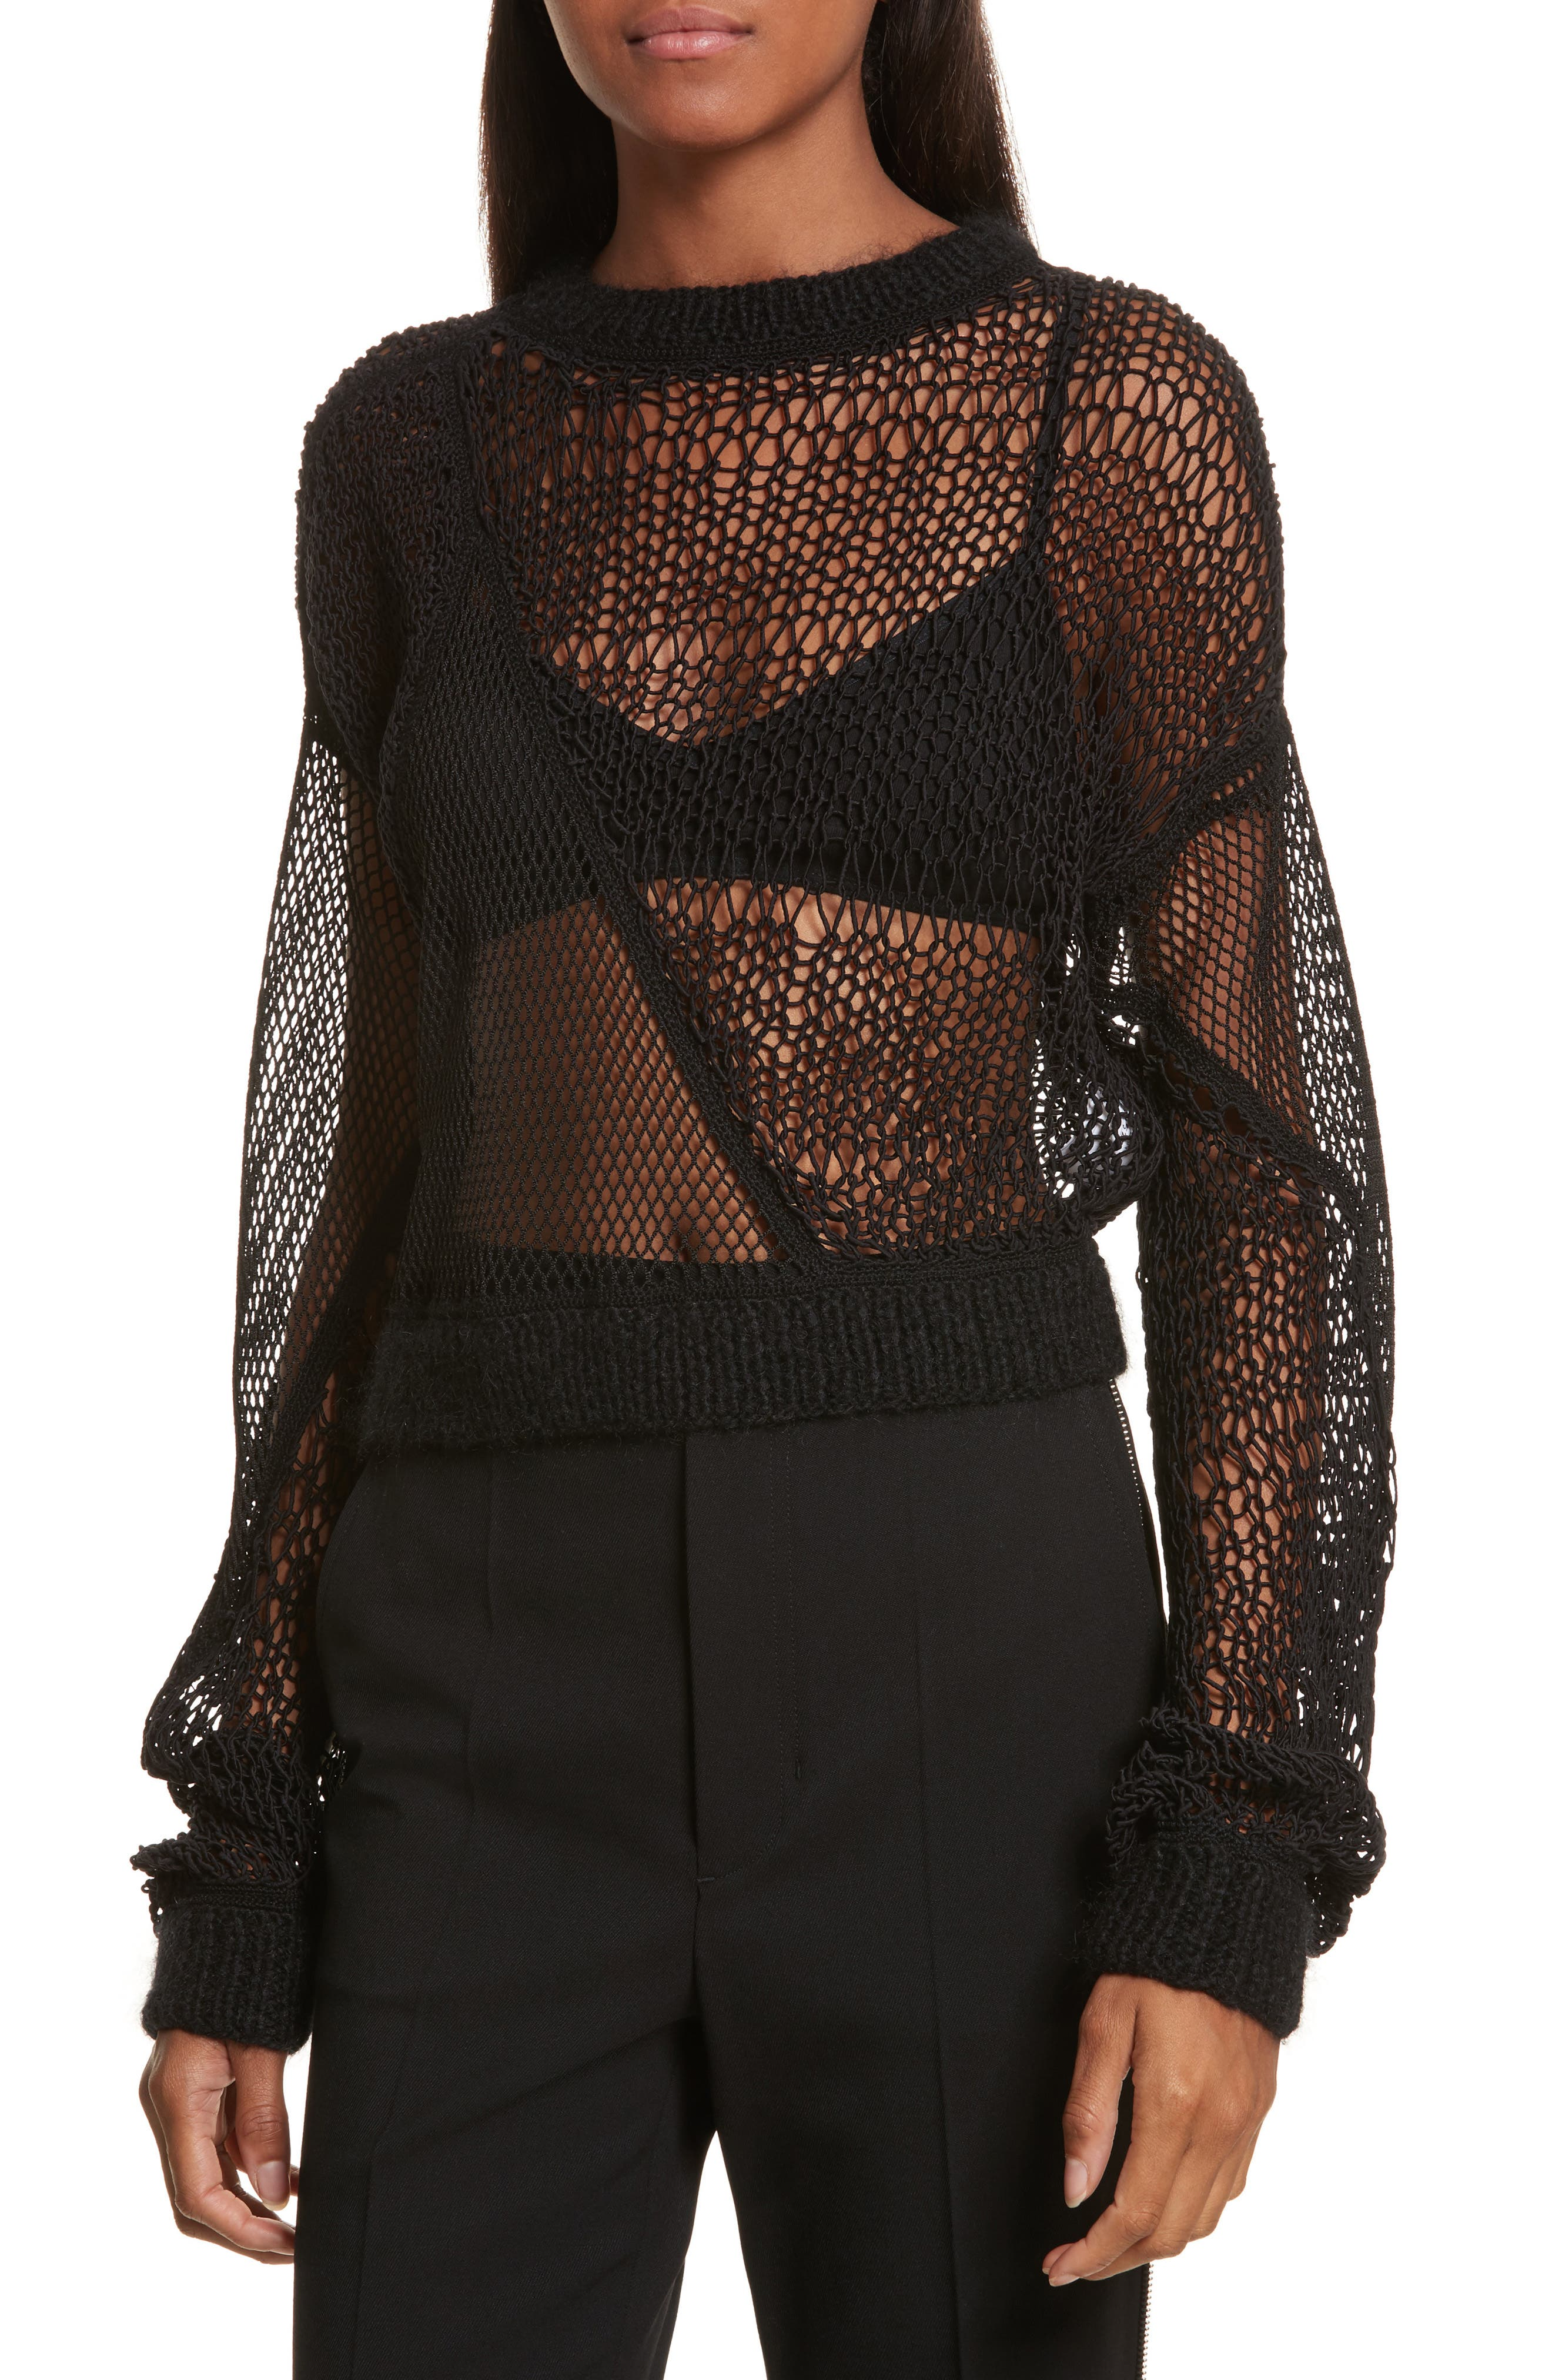 Siouxie Crew Fishnet Patchwork Sweater,                             Main thumbnail 1, color,                             Black